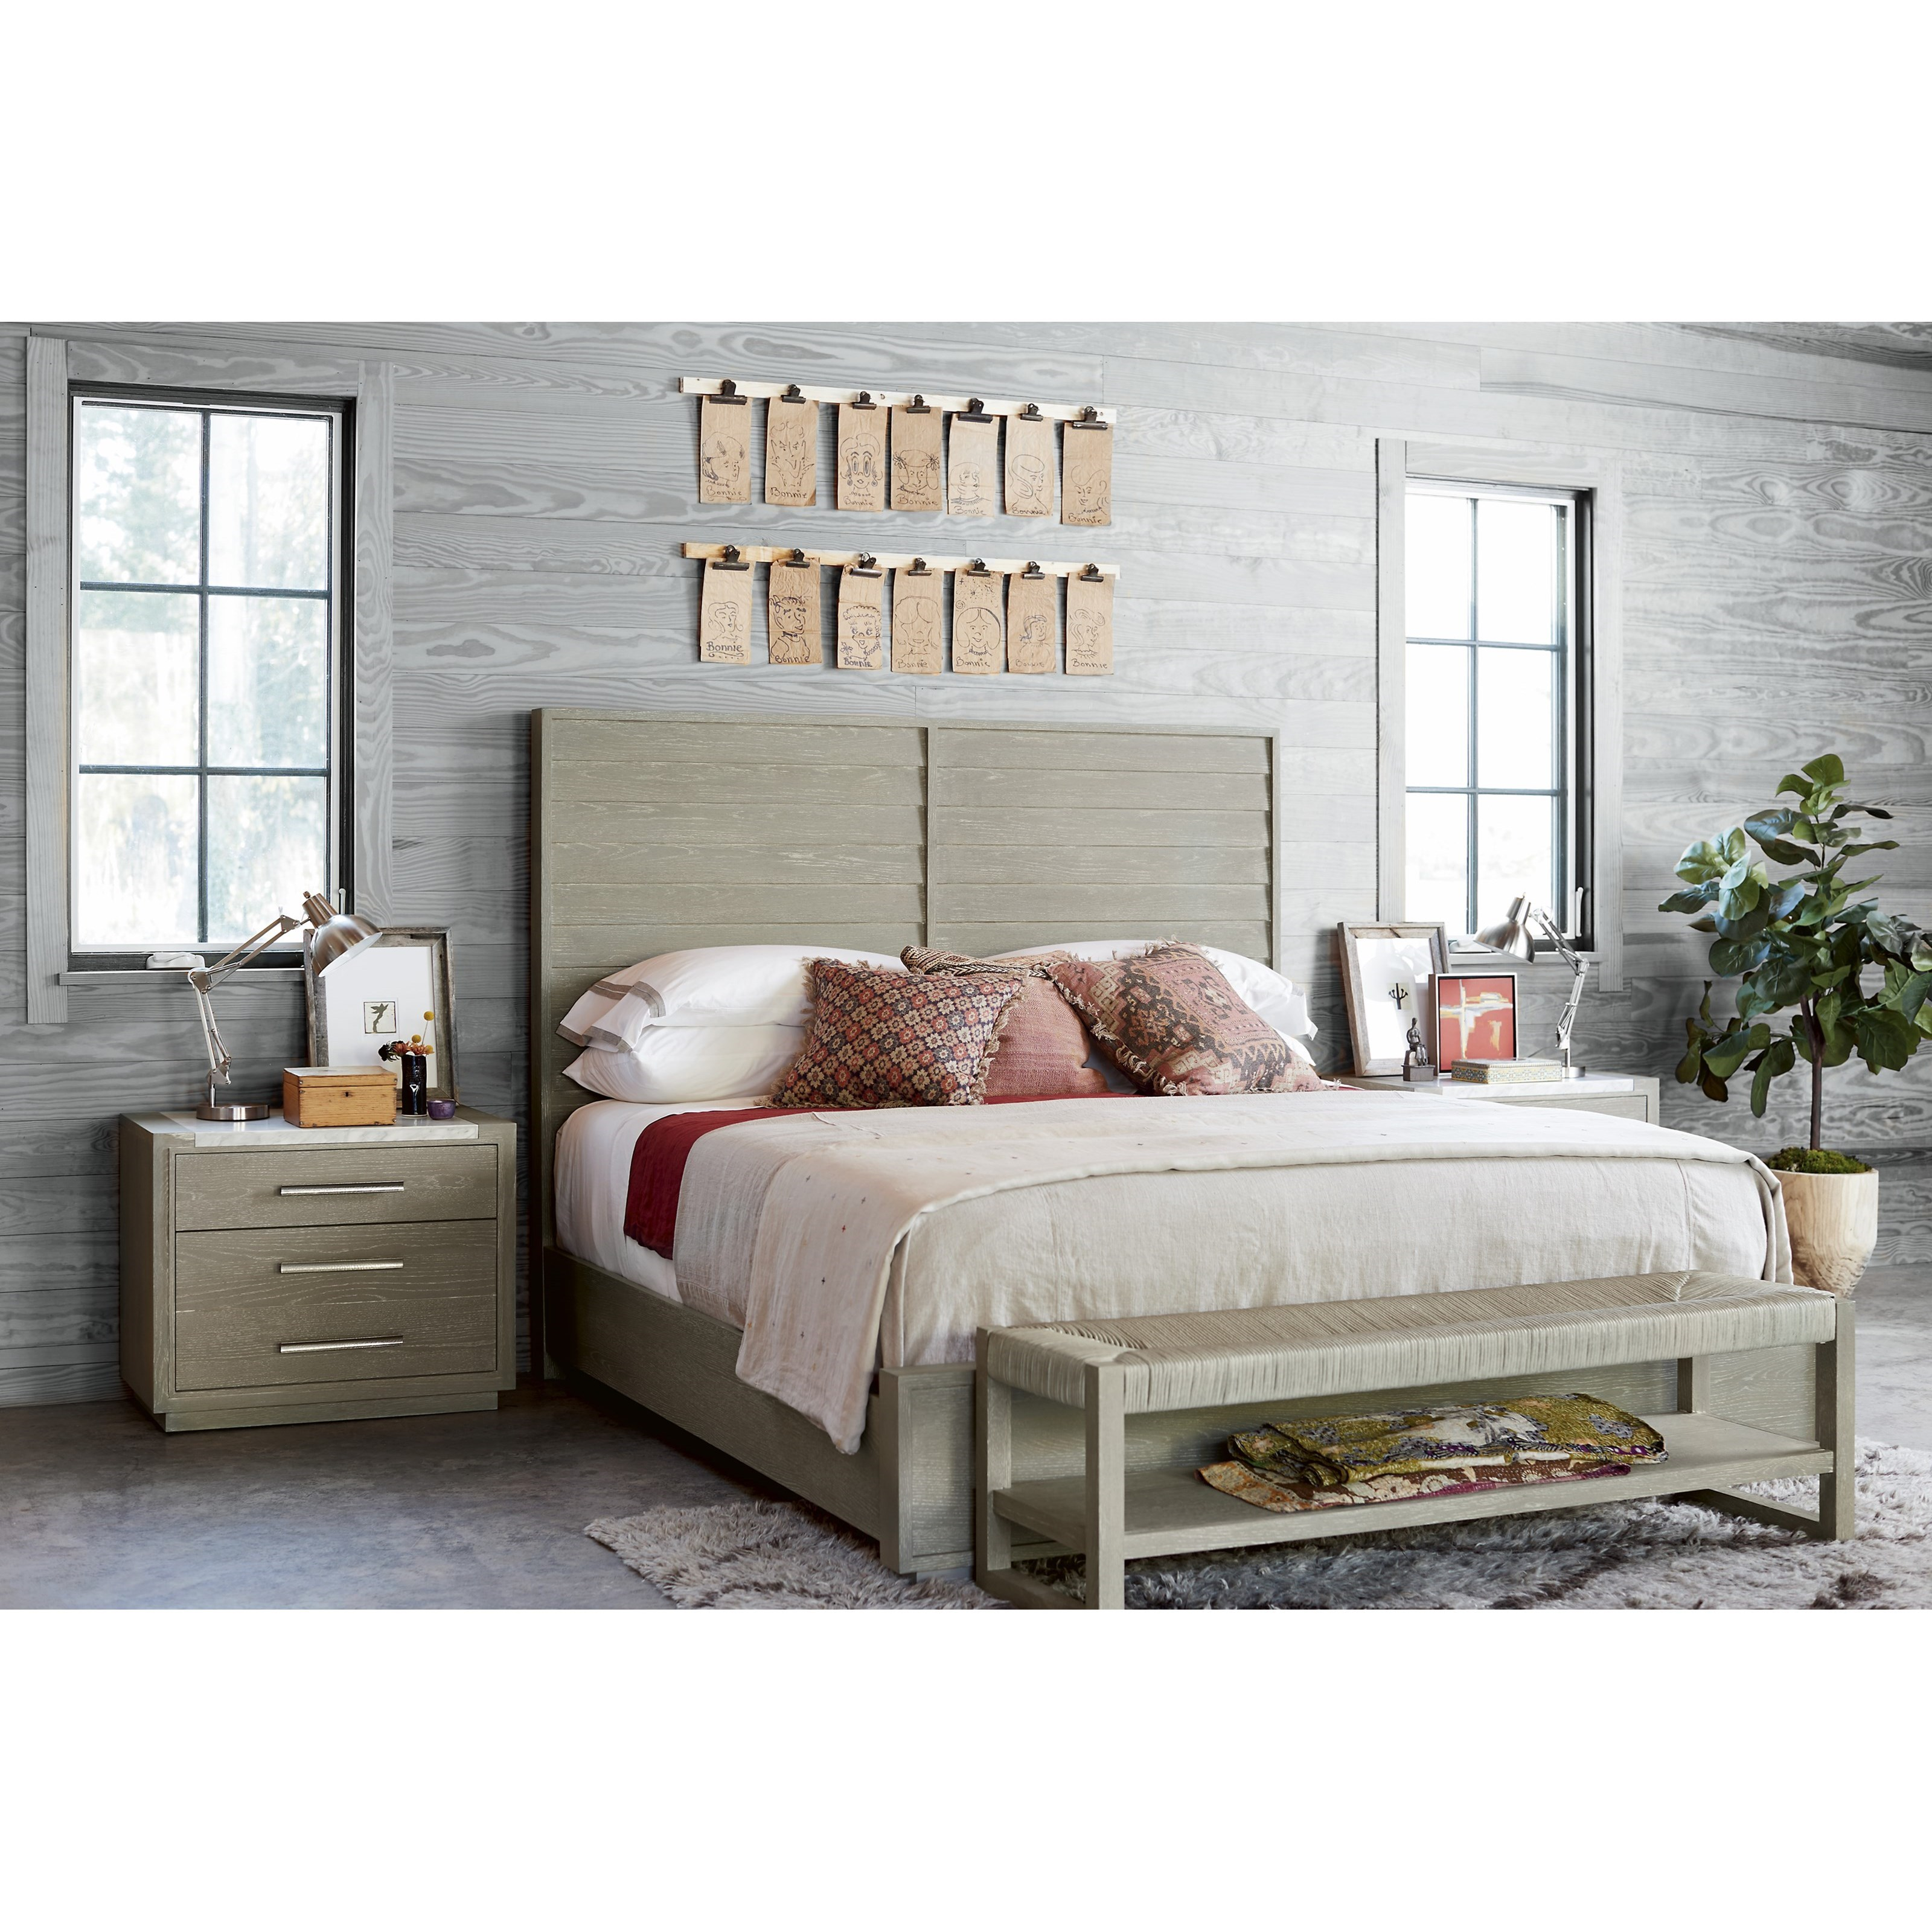 Zephyr King Bedroom Group by Universal at Baer's Furniture